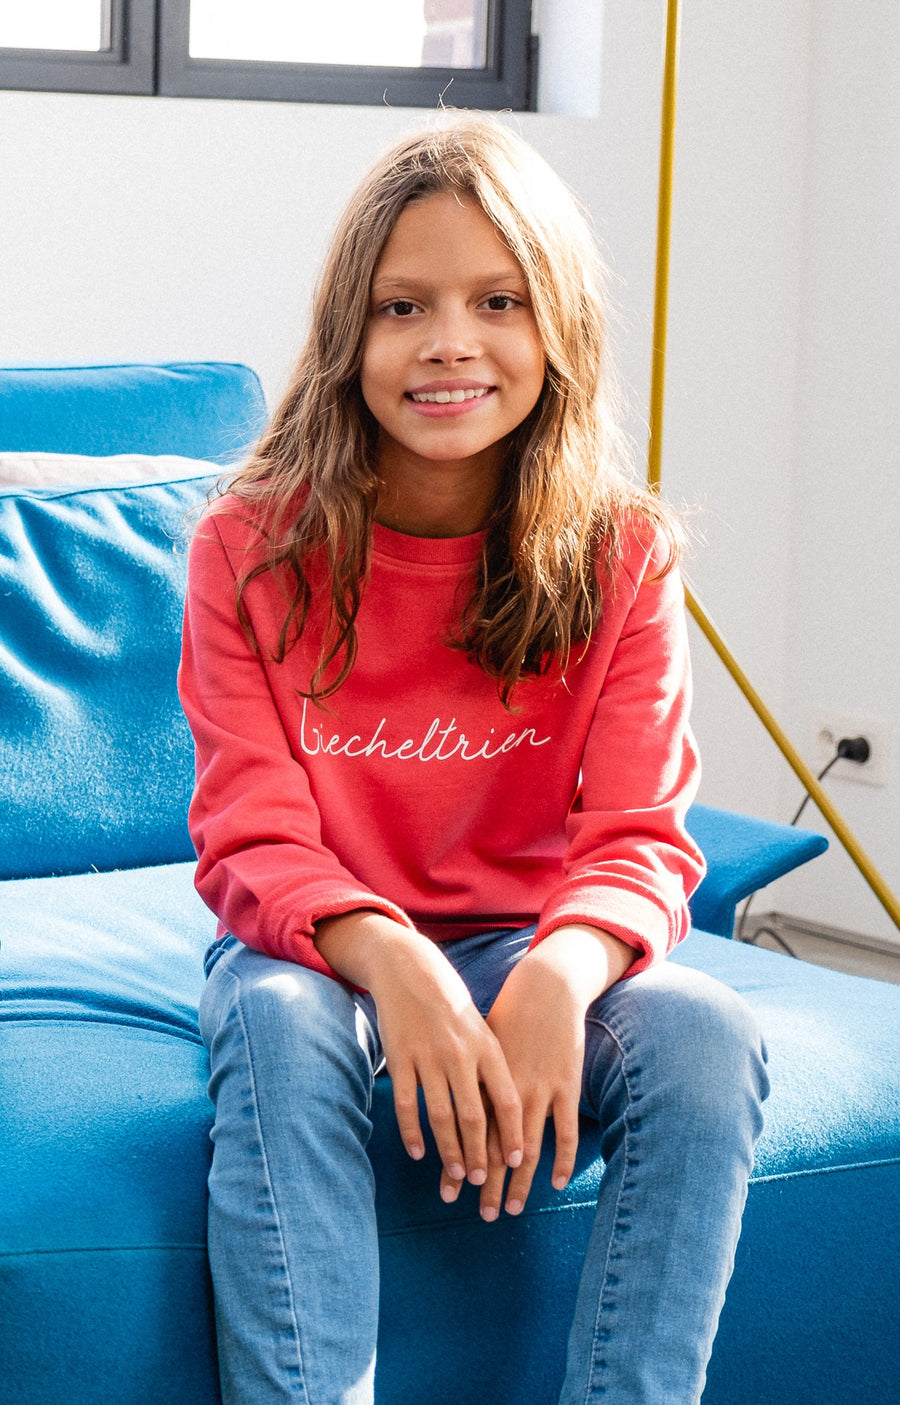 Giecheltrien kids sweater - Joh Clothing